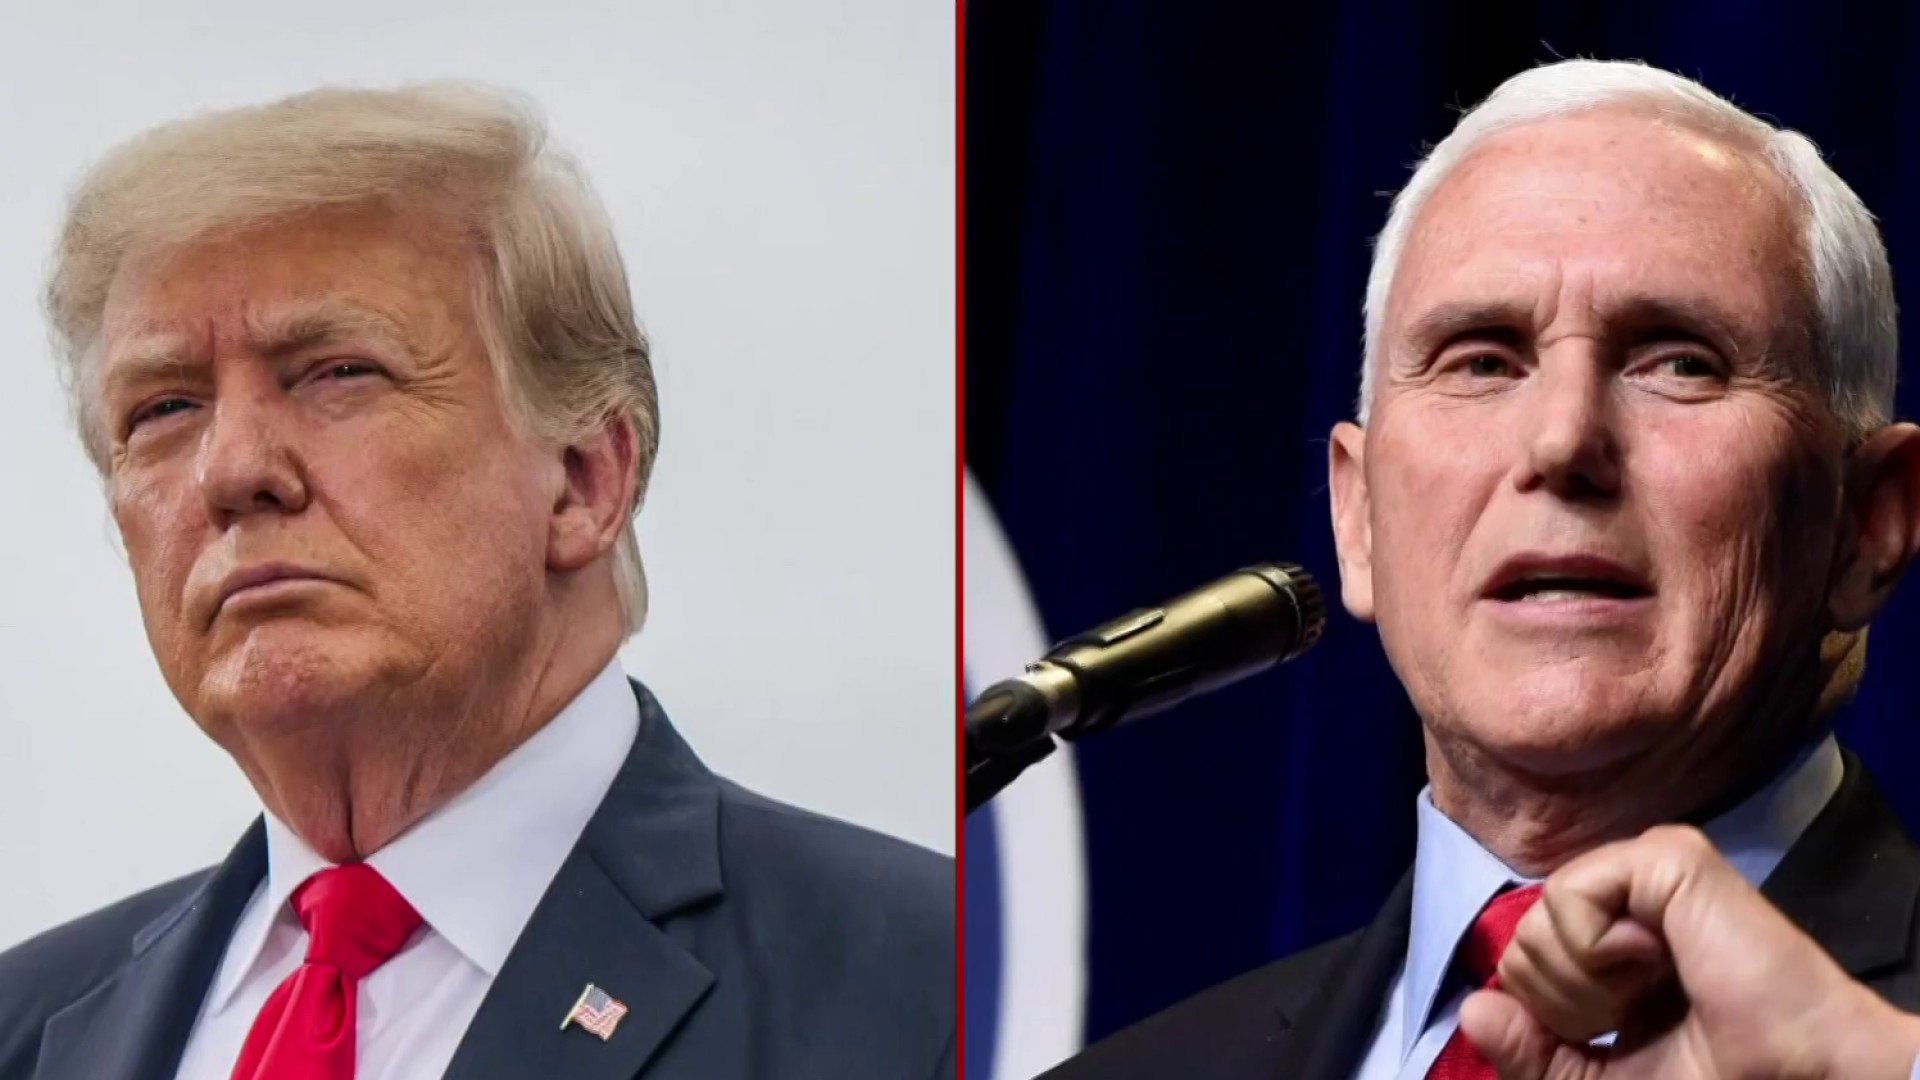 Mike Pence is the wort kind of coward. A new book about Trump proves it.